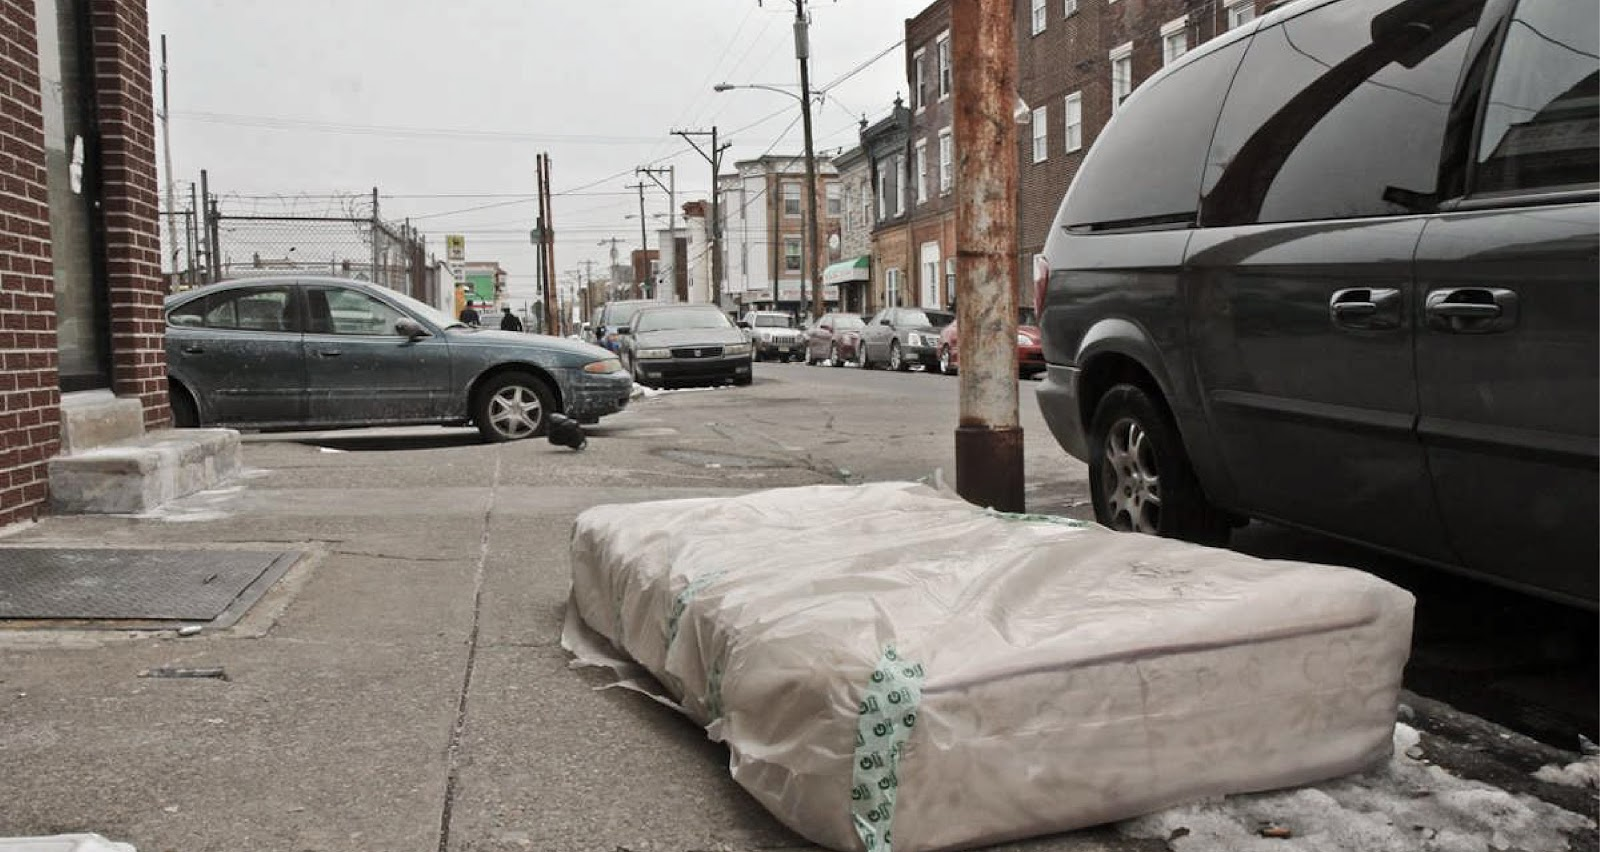 mattresses on the street of nyc